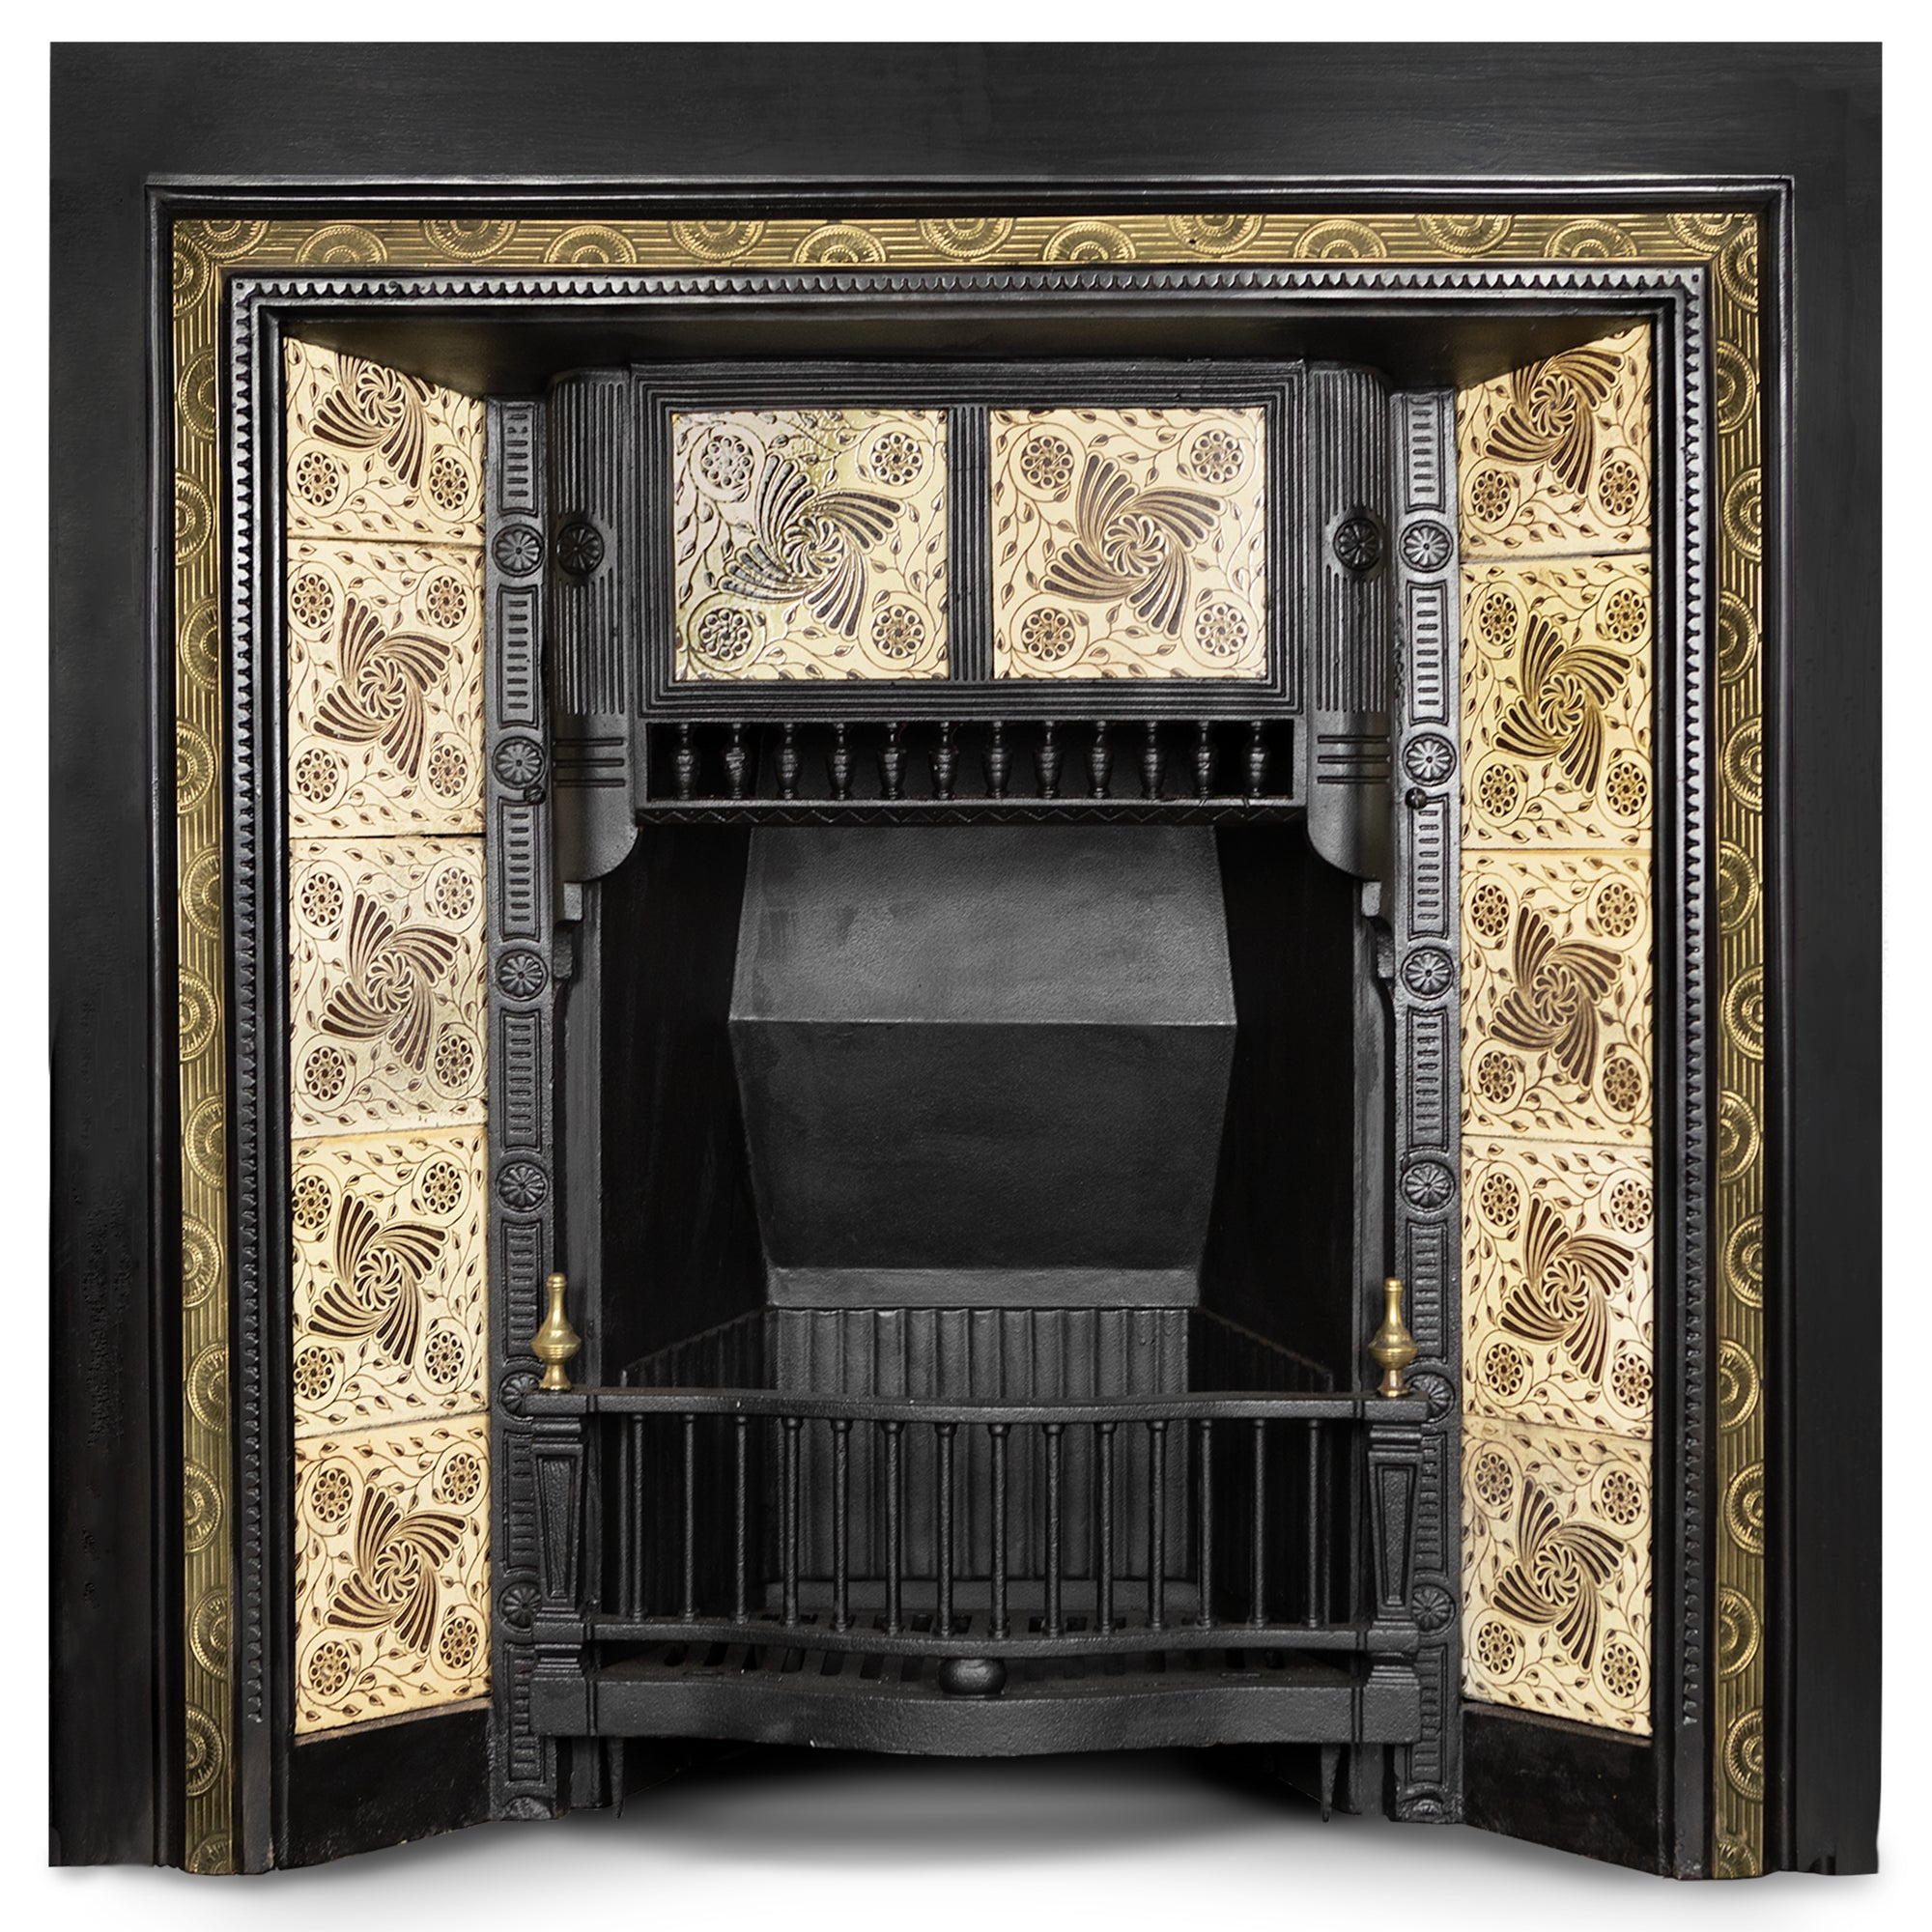 Antique Tiled Fireplace Insert with Decorative Brass Border | The Architectural Forum